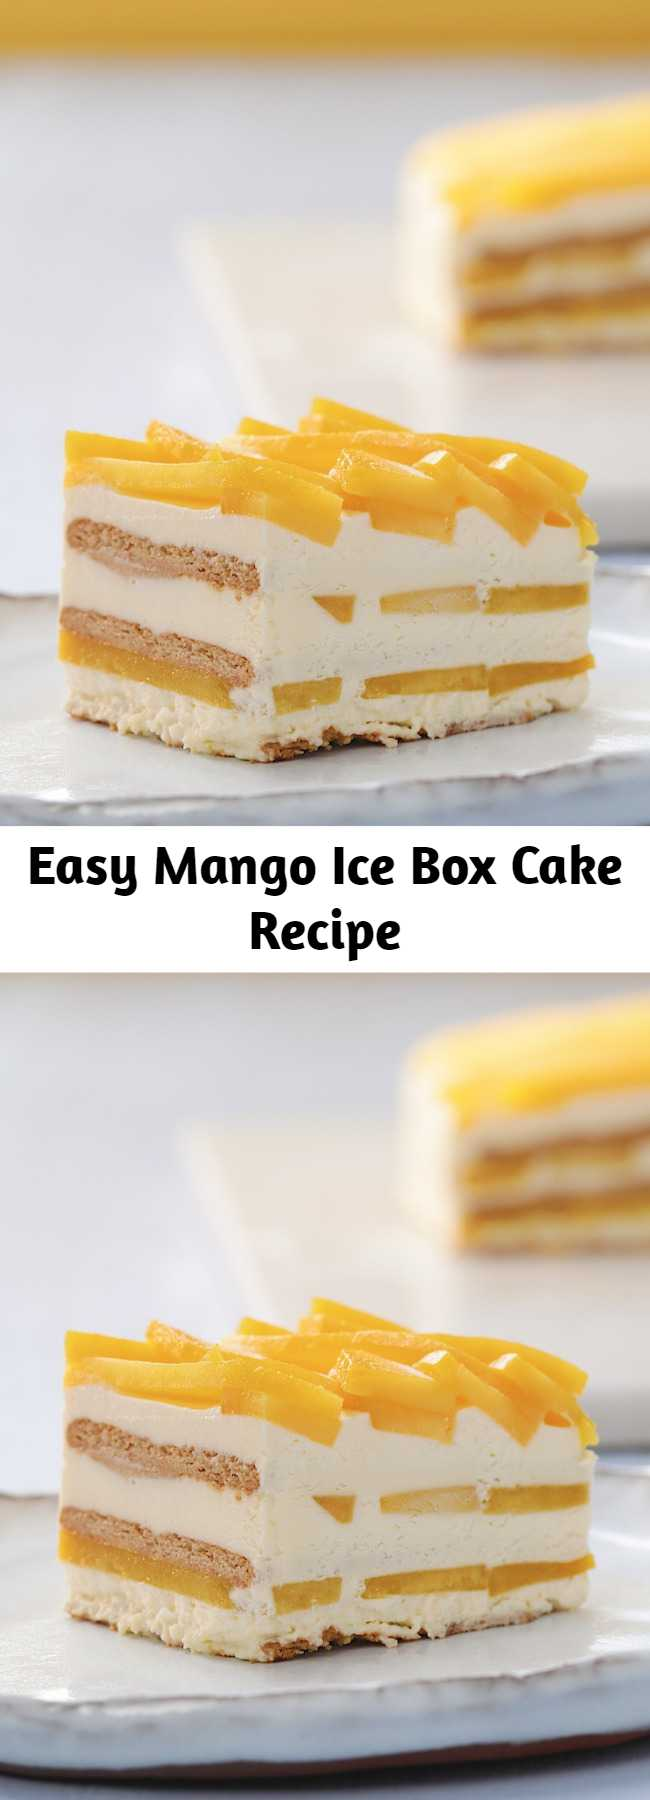 Easy Mango Ice Box Cake Recipe - This mango icebox cake is a Summer family classic! the layers of juicy fresh mango are sure to keep you refreshed!